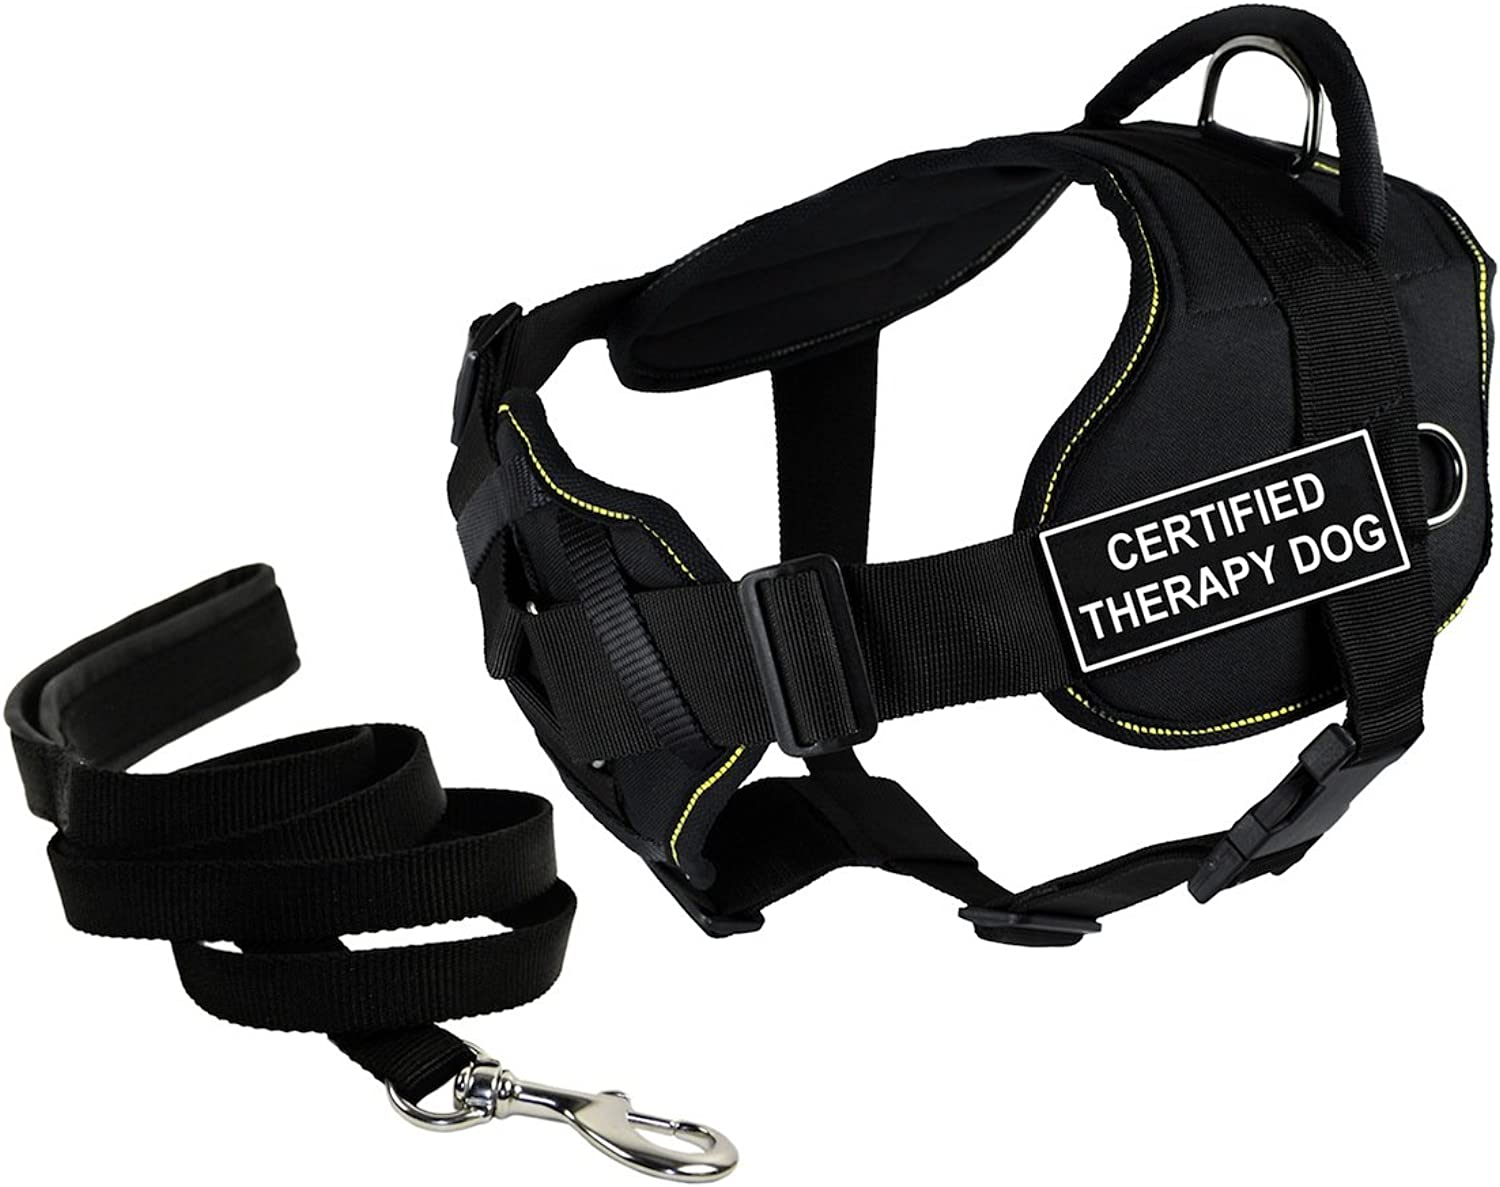 Dean & Tyler's DT Fun Chest Support CERTIFIED THERAPY DOG Harness, Medium, with 6 ft Padded Puppy Leash.